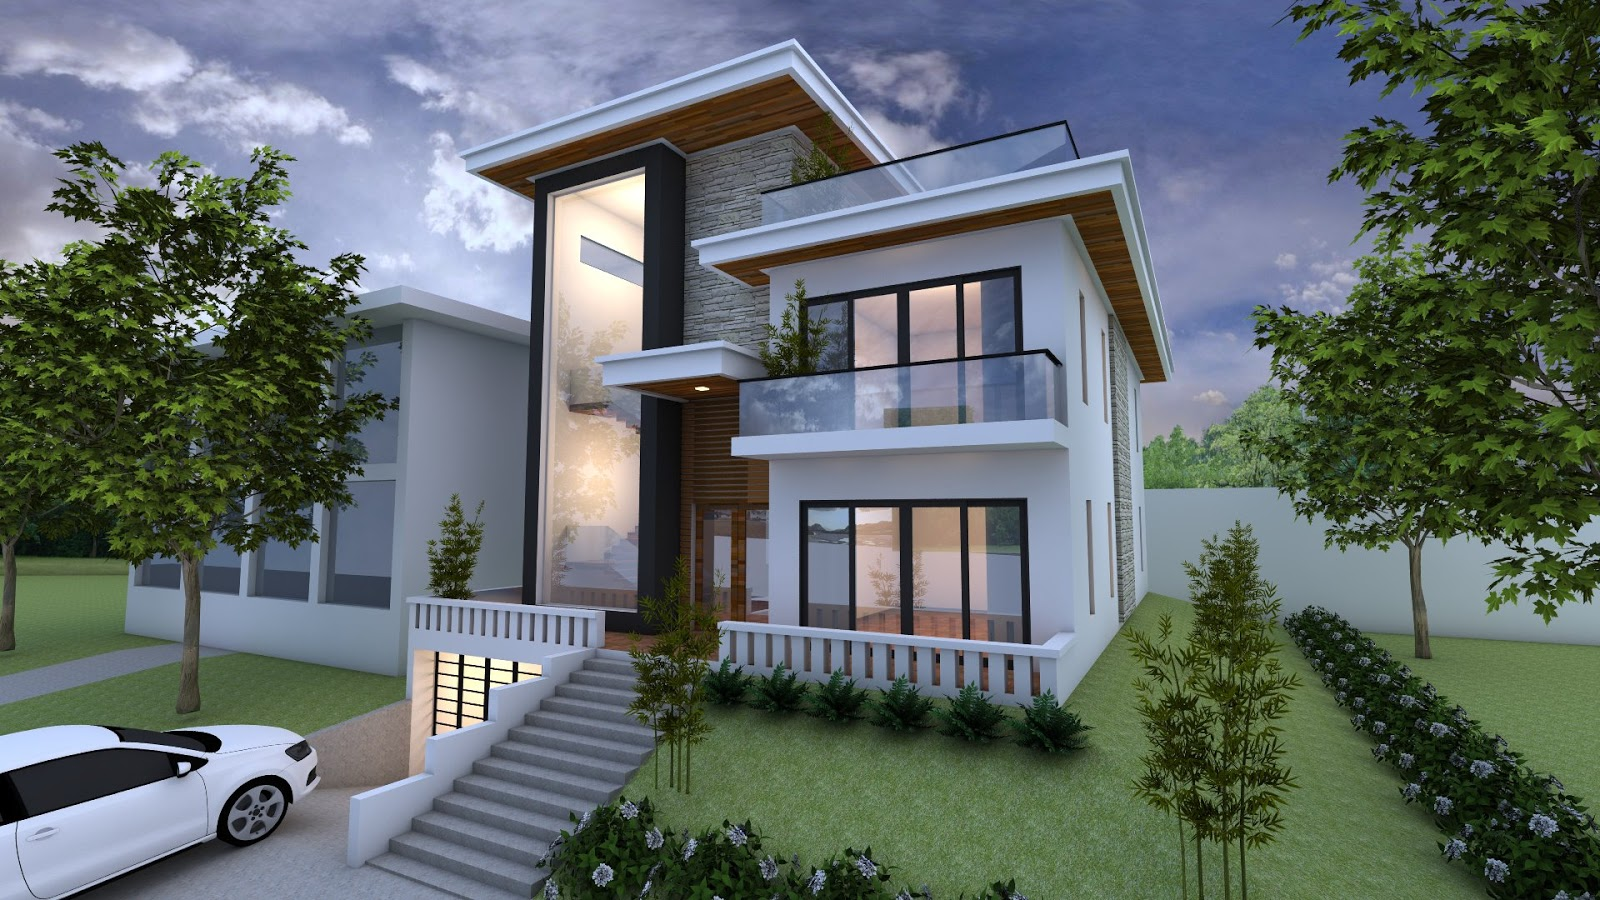 Sketchup exterior villa design drawing from elevation 3 for Exterior villa design photo gallery